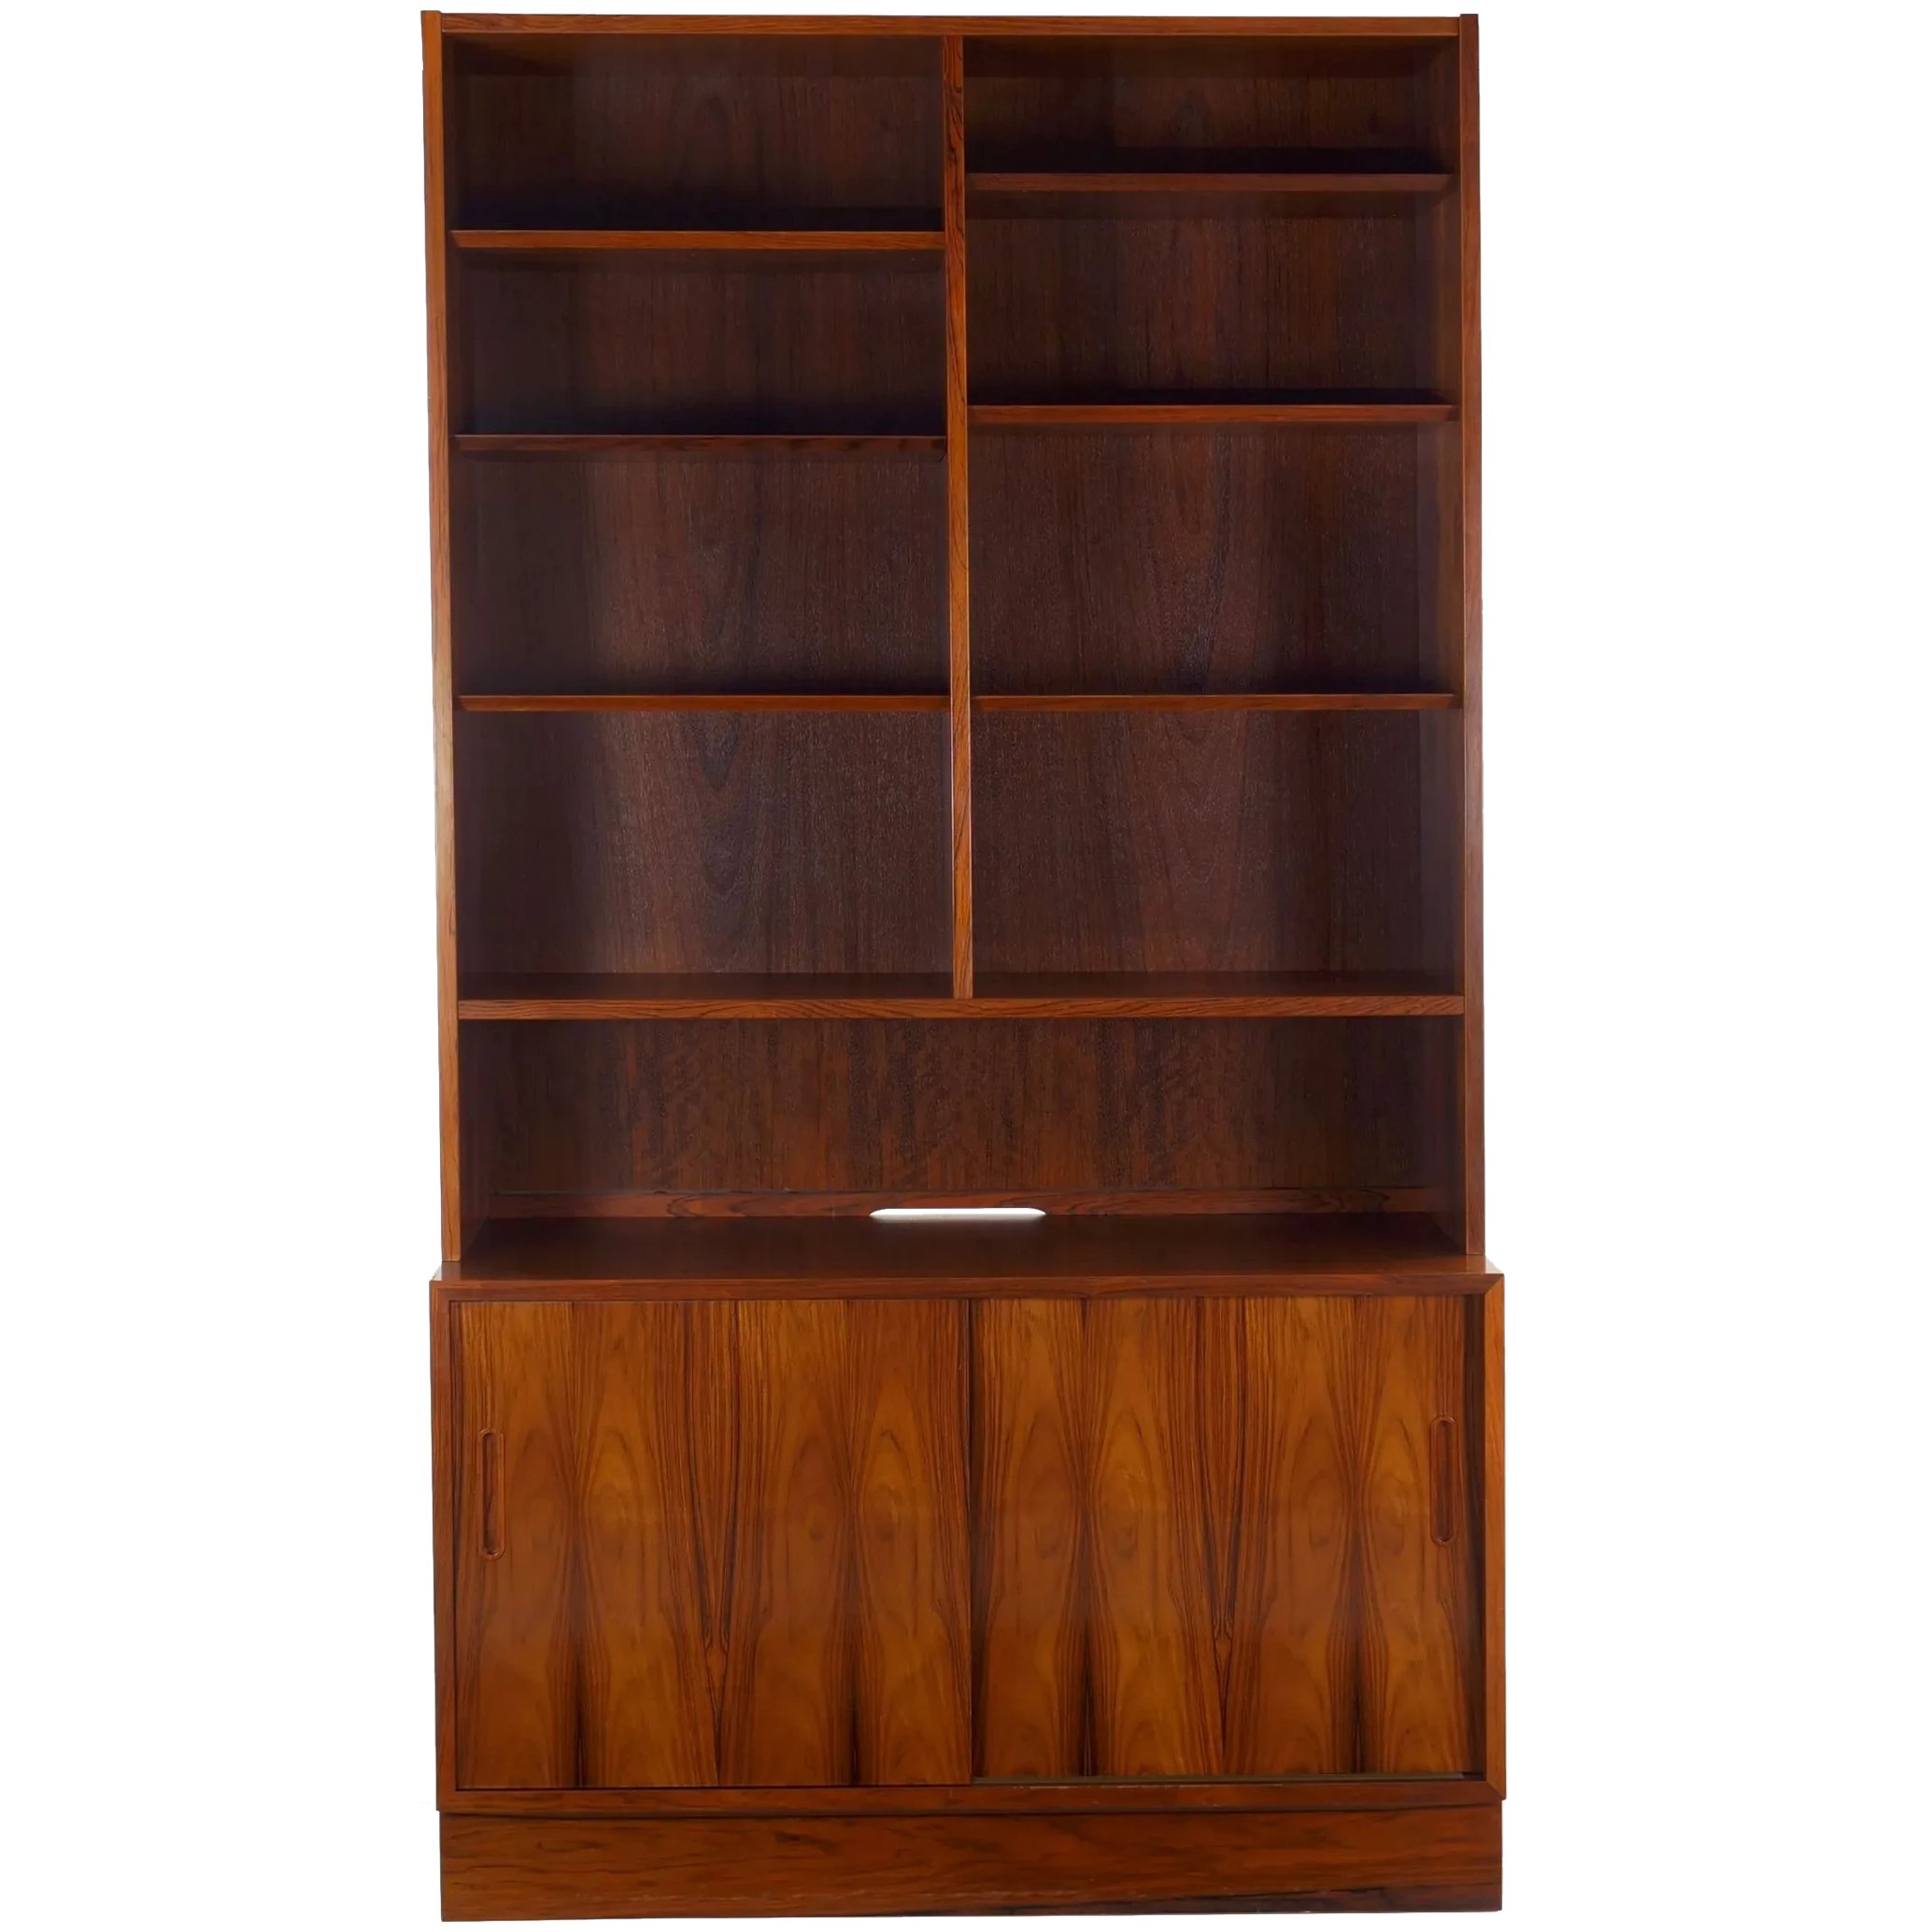 Image of: Danish Mid Century Modern Rosewood Bookcase Over Cabinet By Poul Silla Ltd Ruby Lane